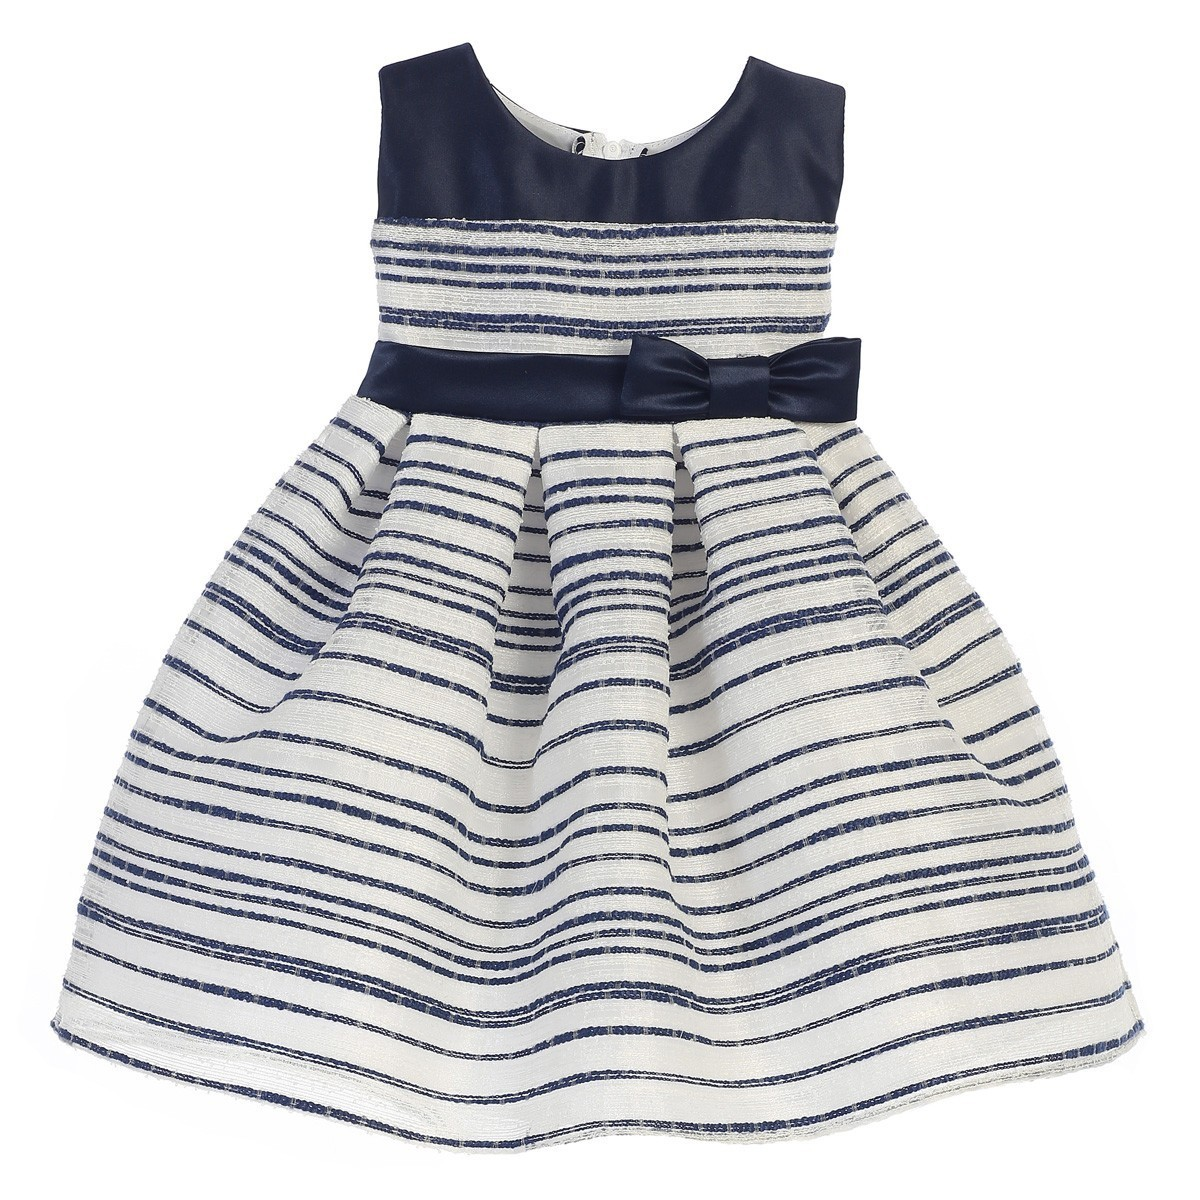 Sweet Kids Baby Girls Ivory Woven Striped Organza Special Occasion Dress 6-24M